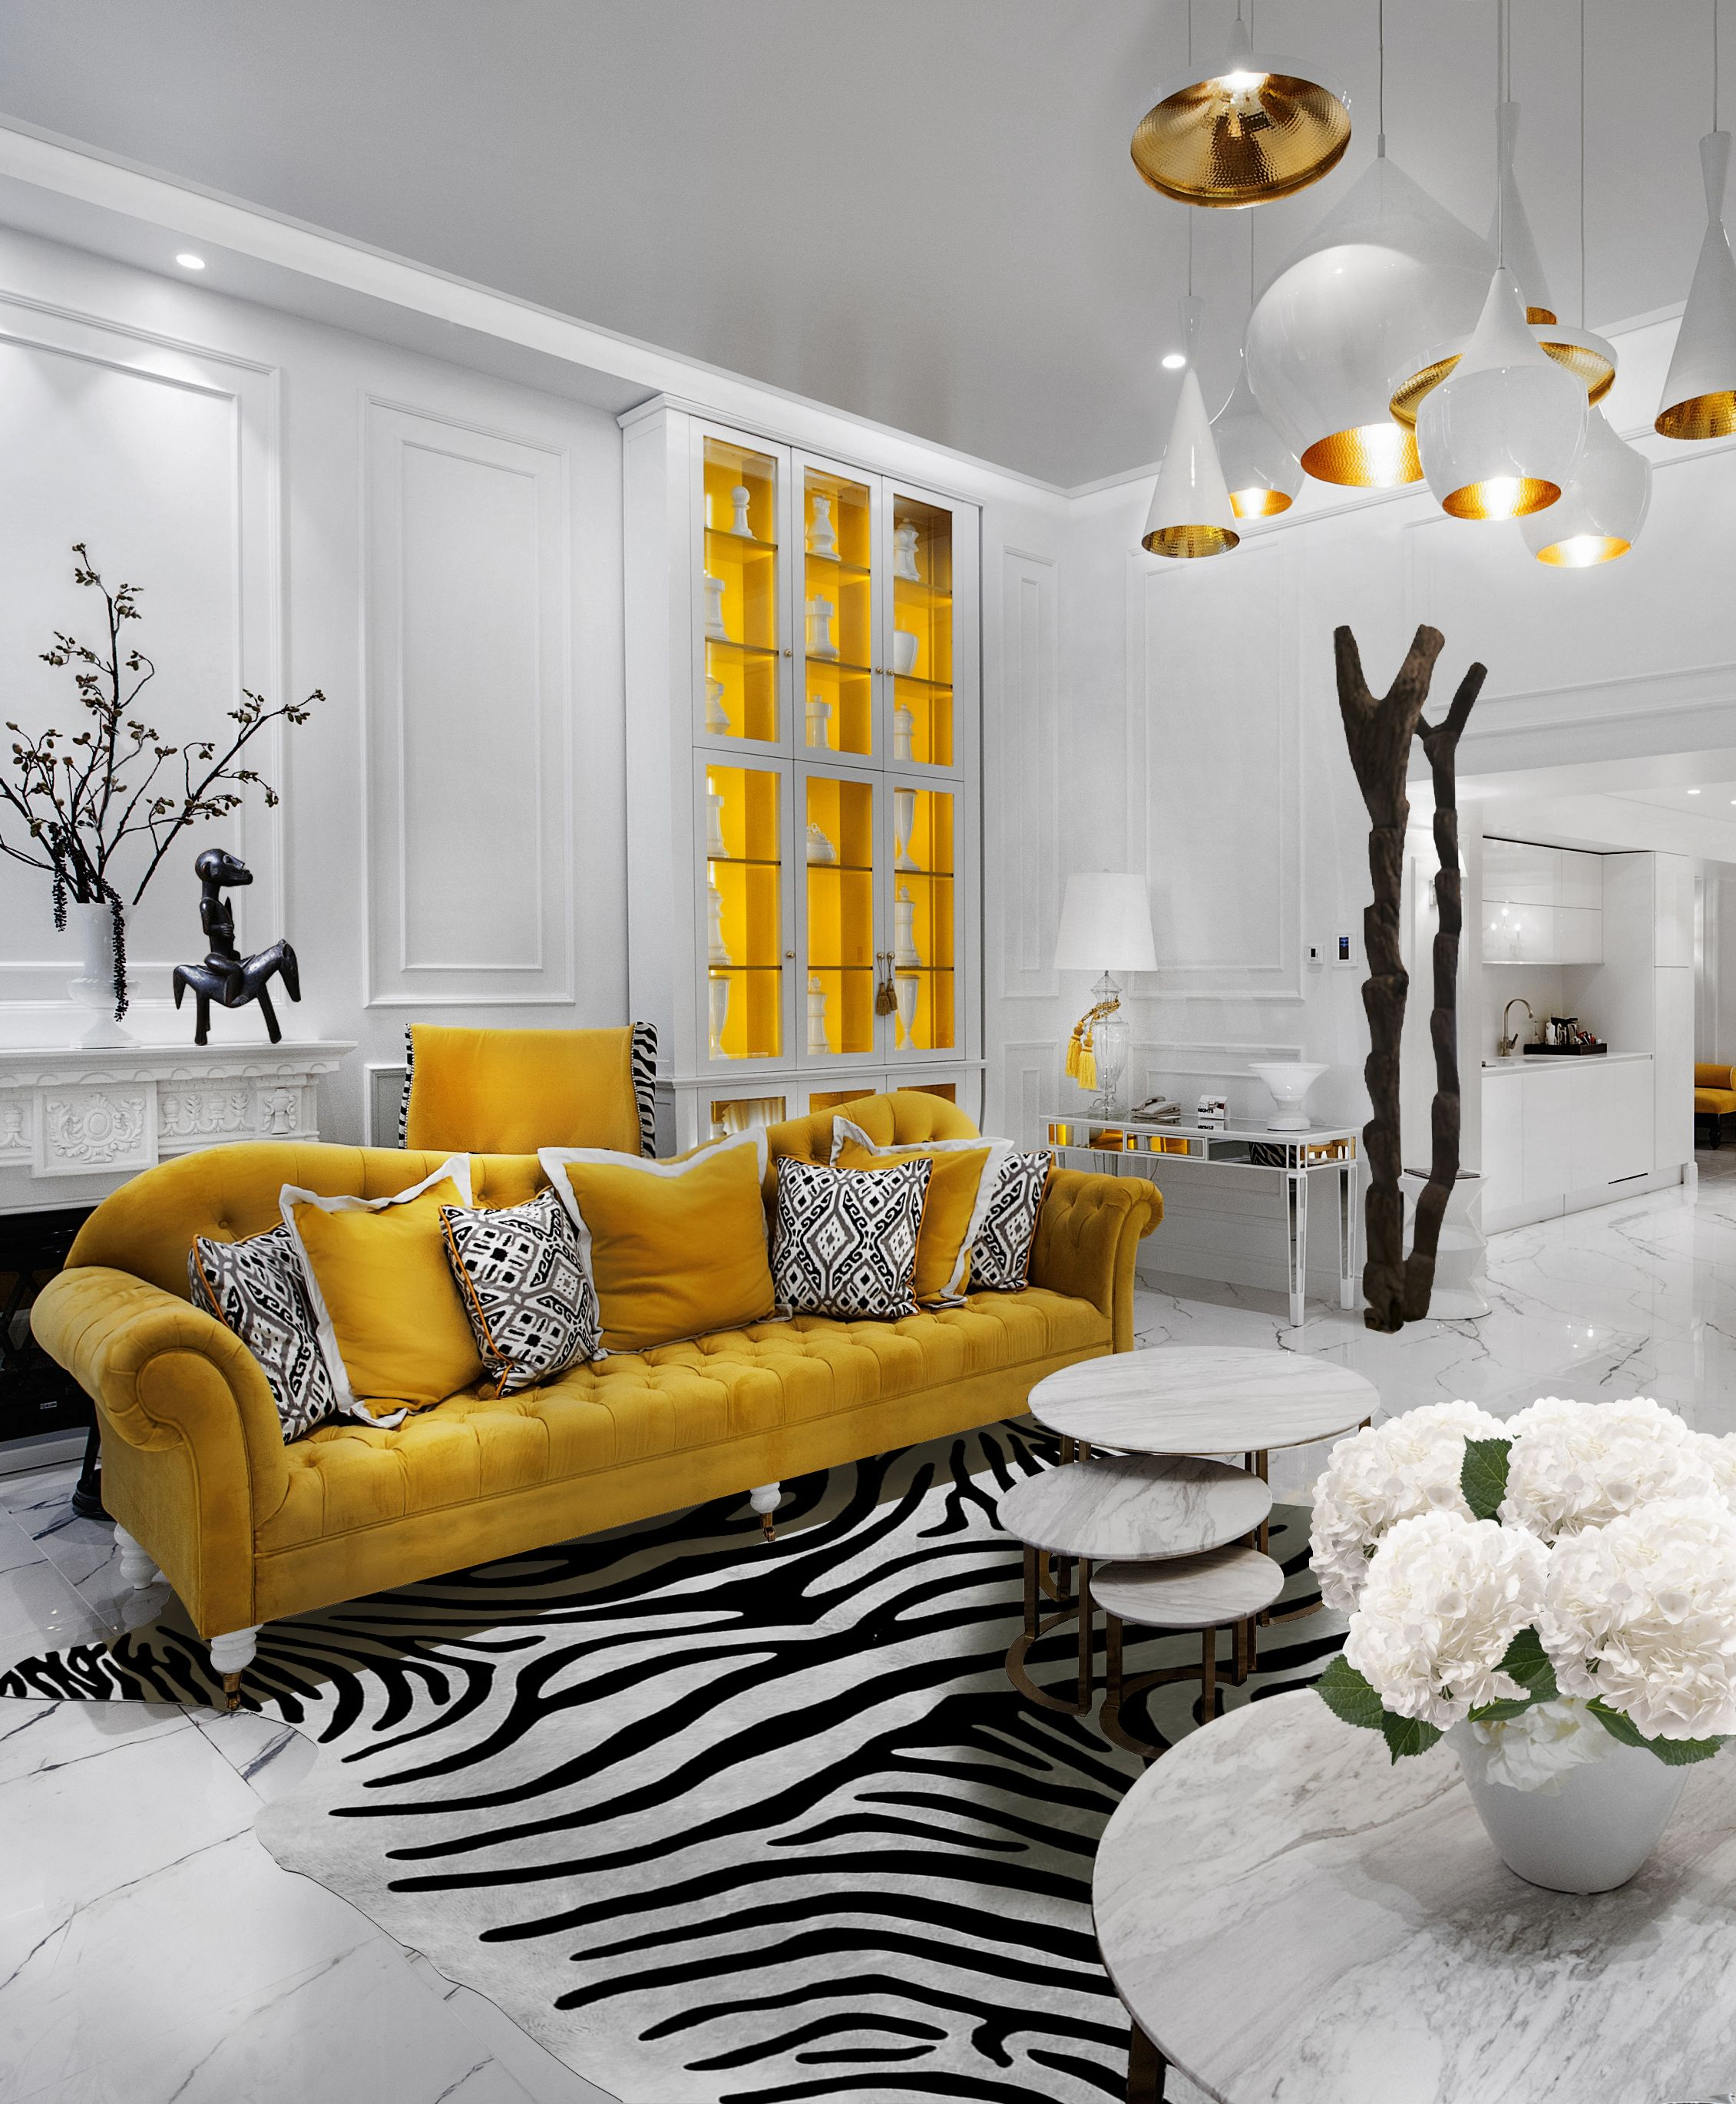 The Radisson Bucharest Royal Suite Black White And Yellow Scheme